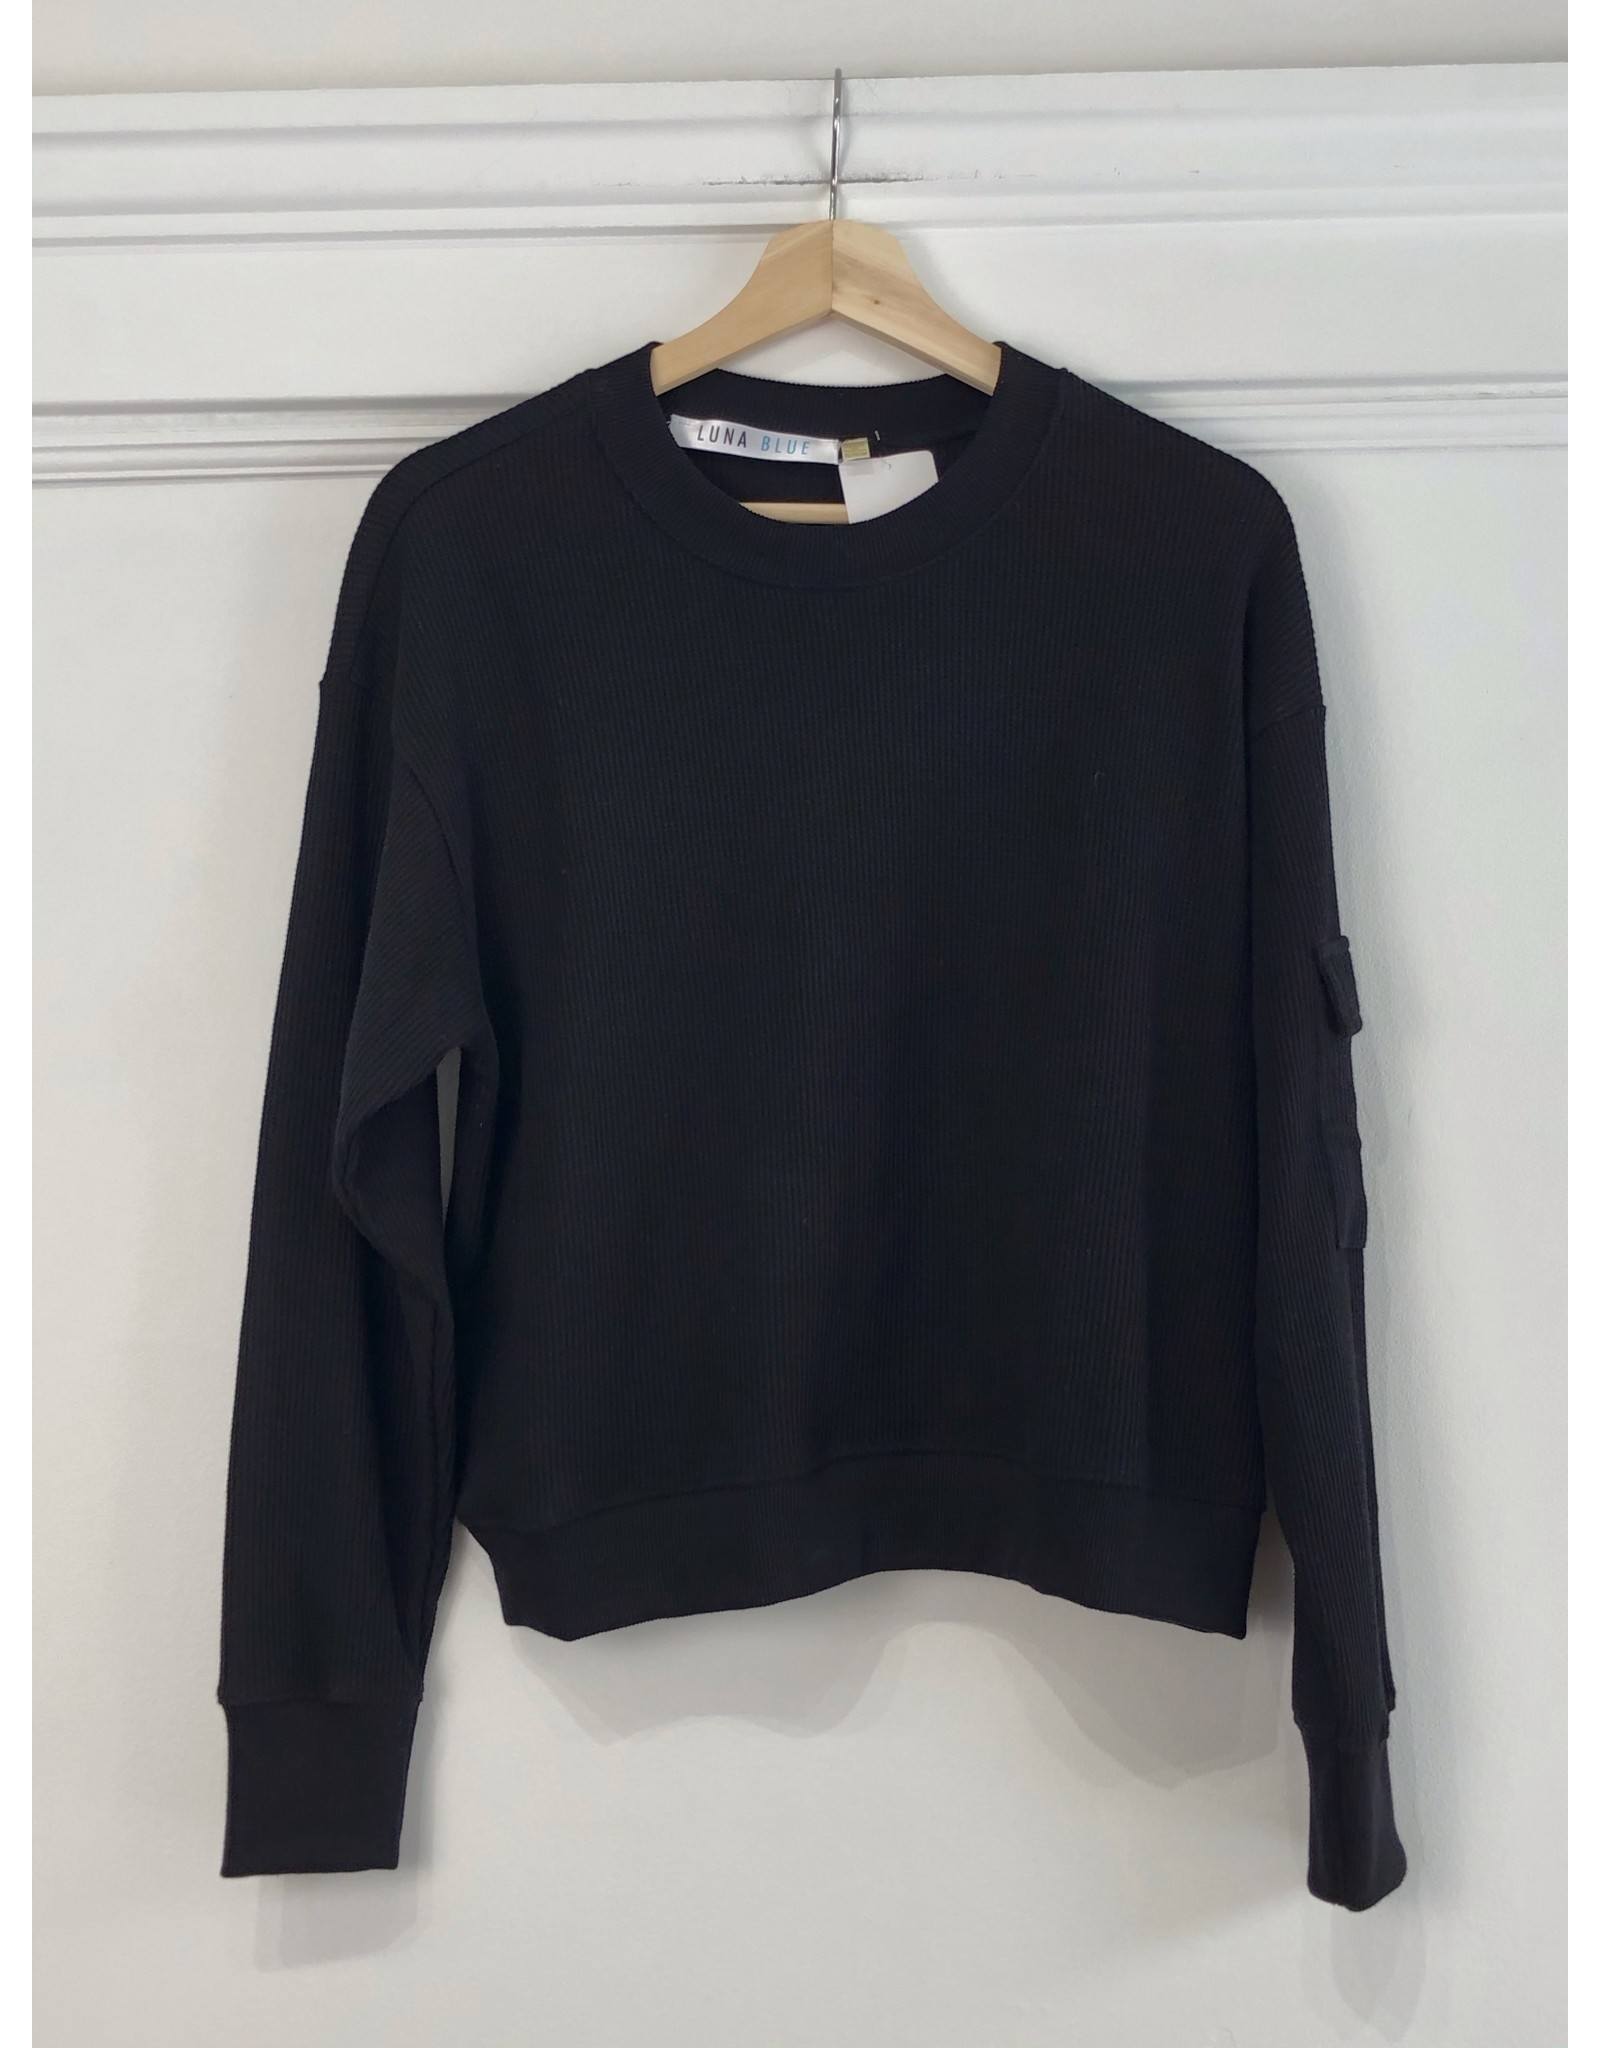 RD Style RD Style - Daphne knit pullover (black)